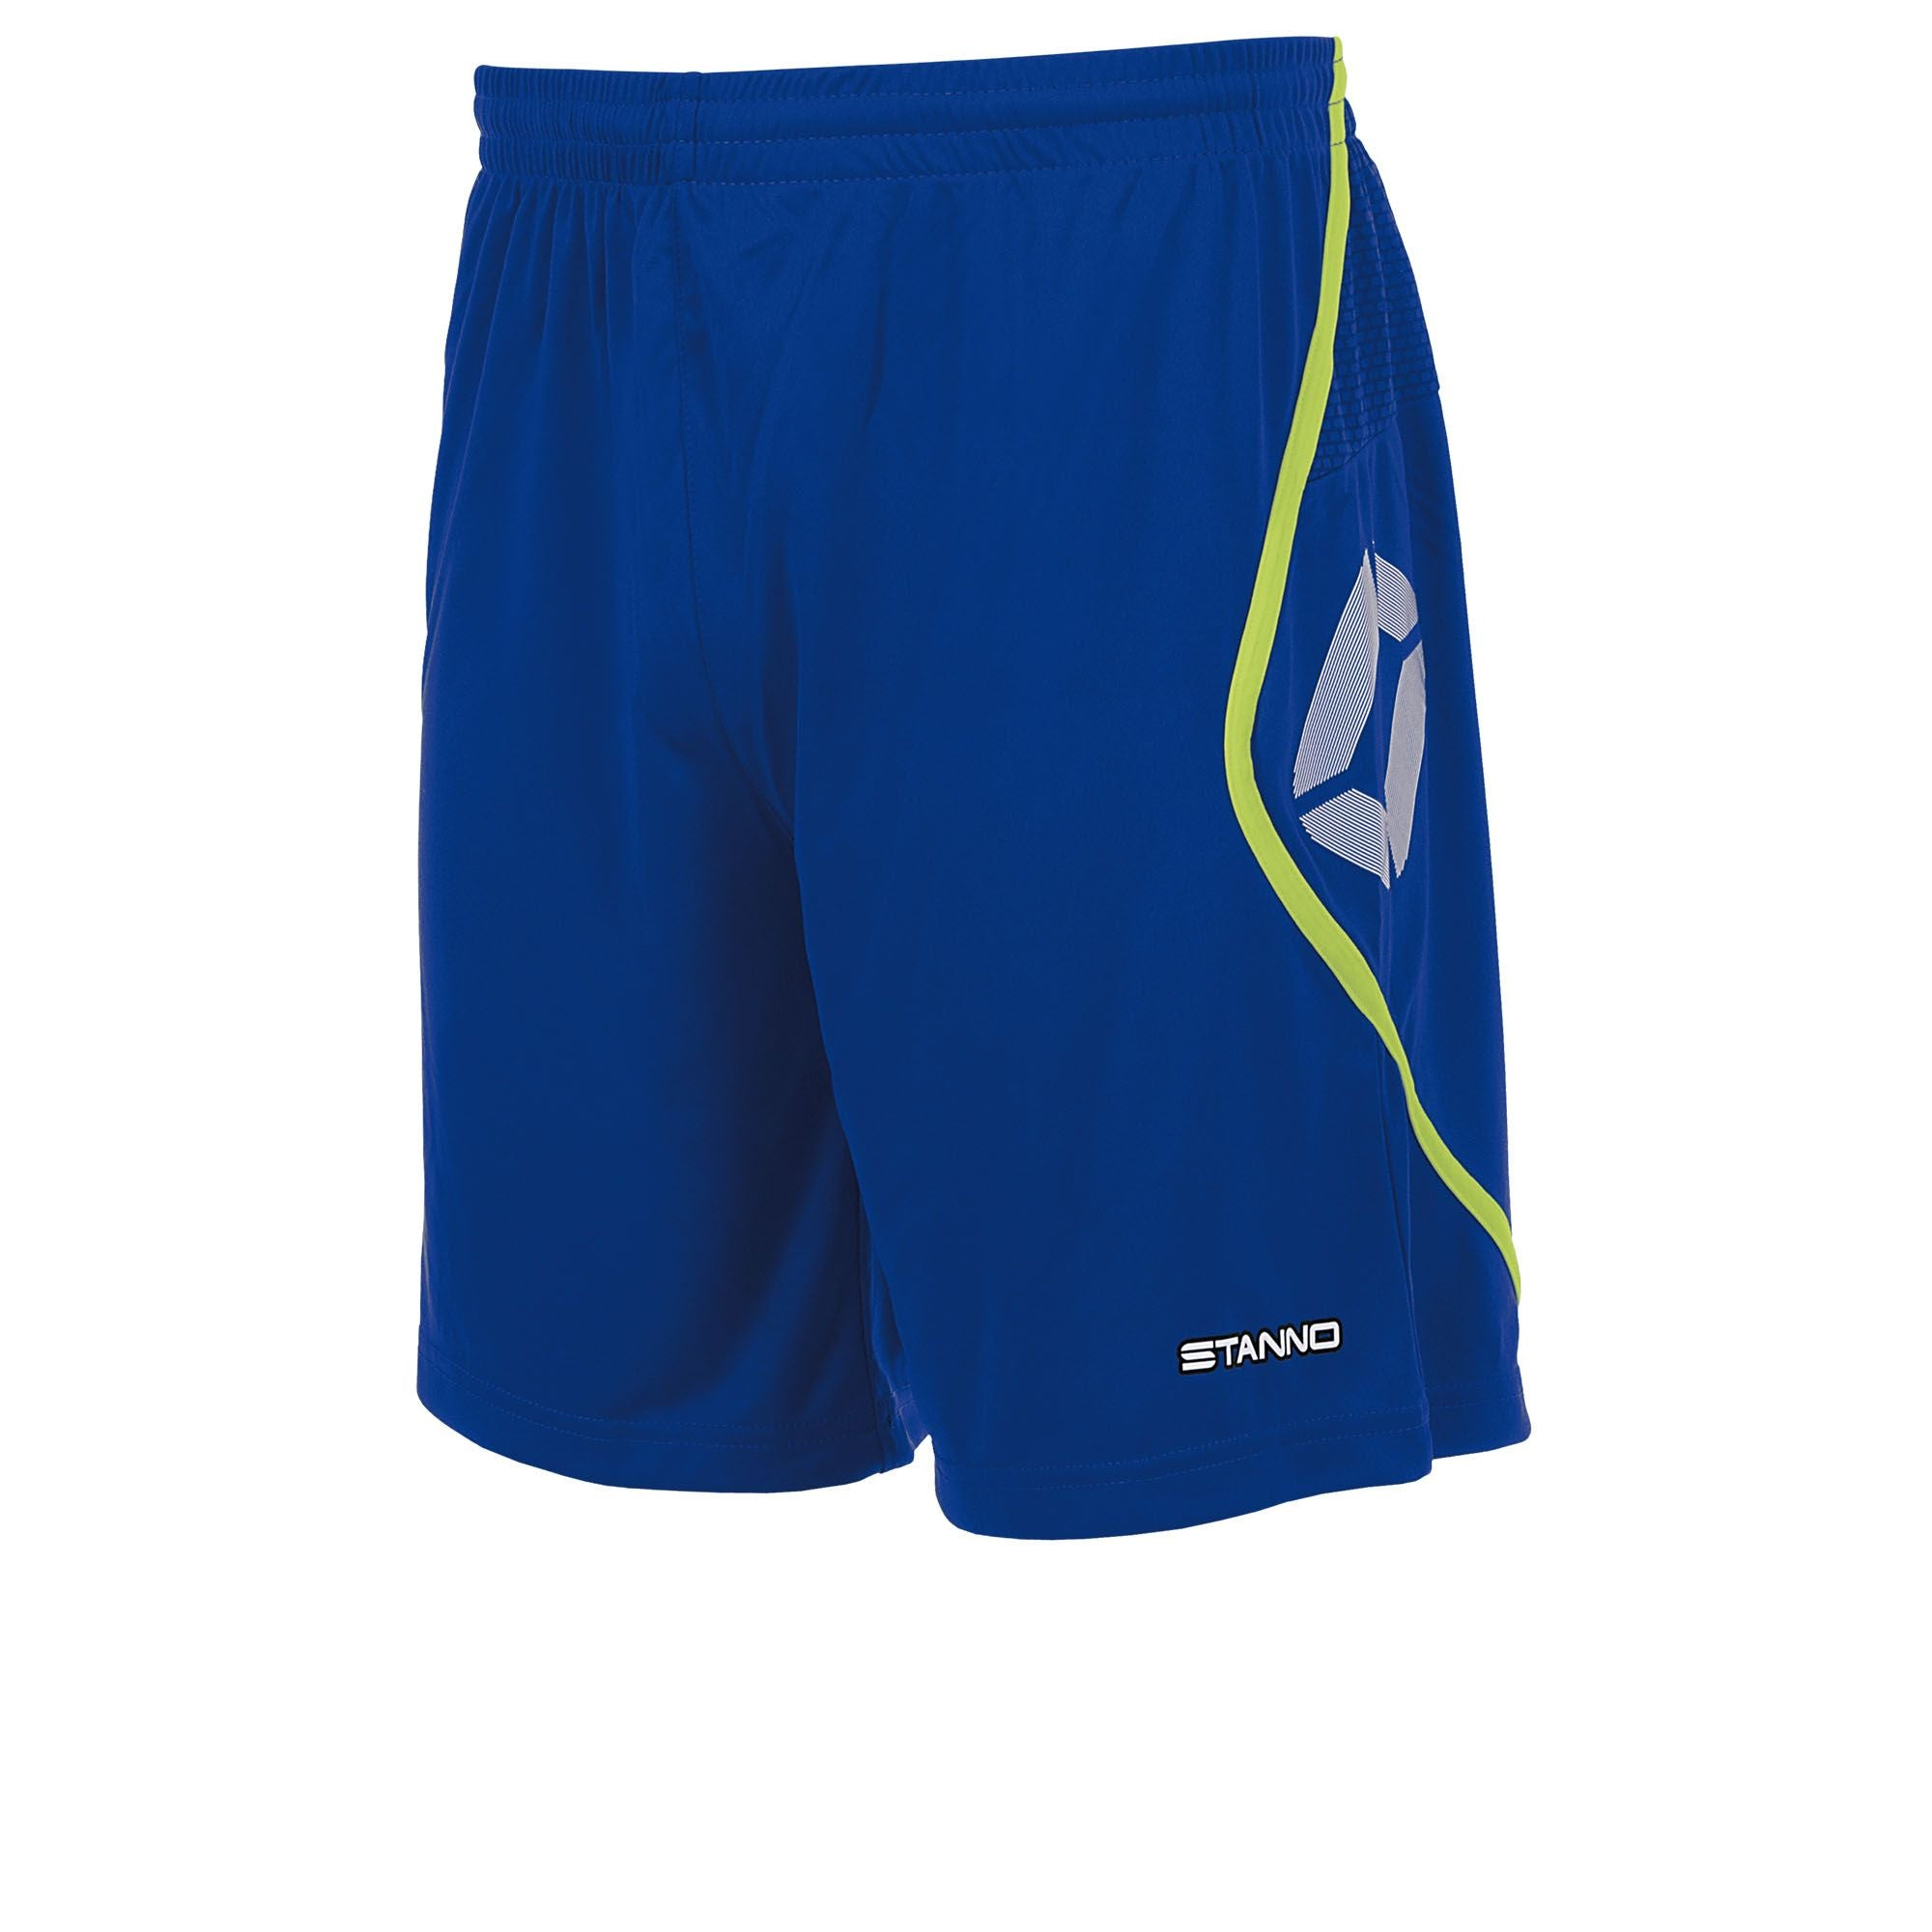 Stanno Pisa Shorts - Deep Blue/Neon Yellow